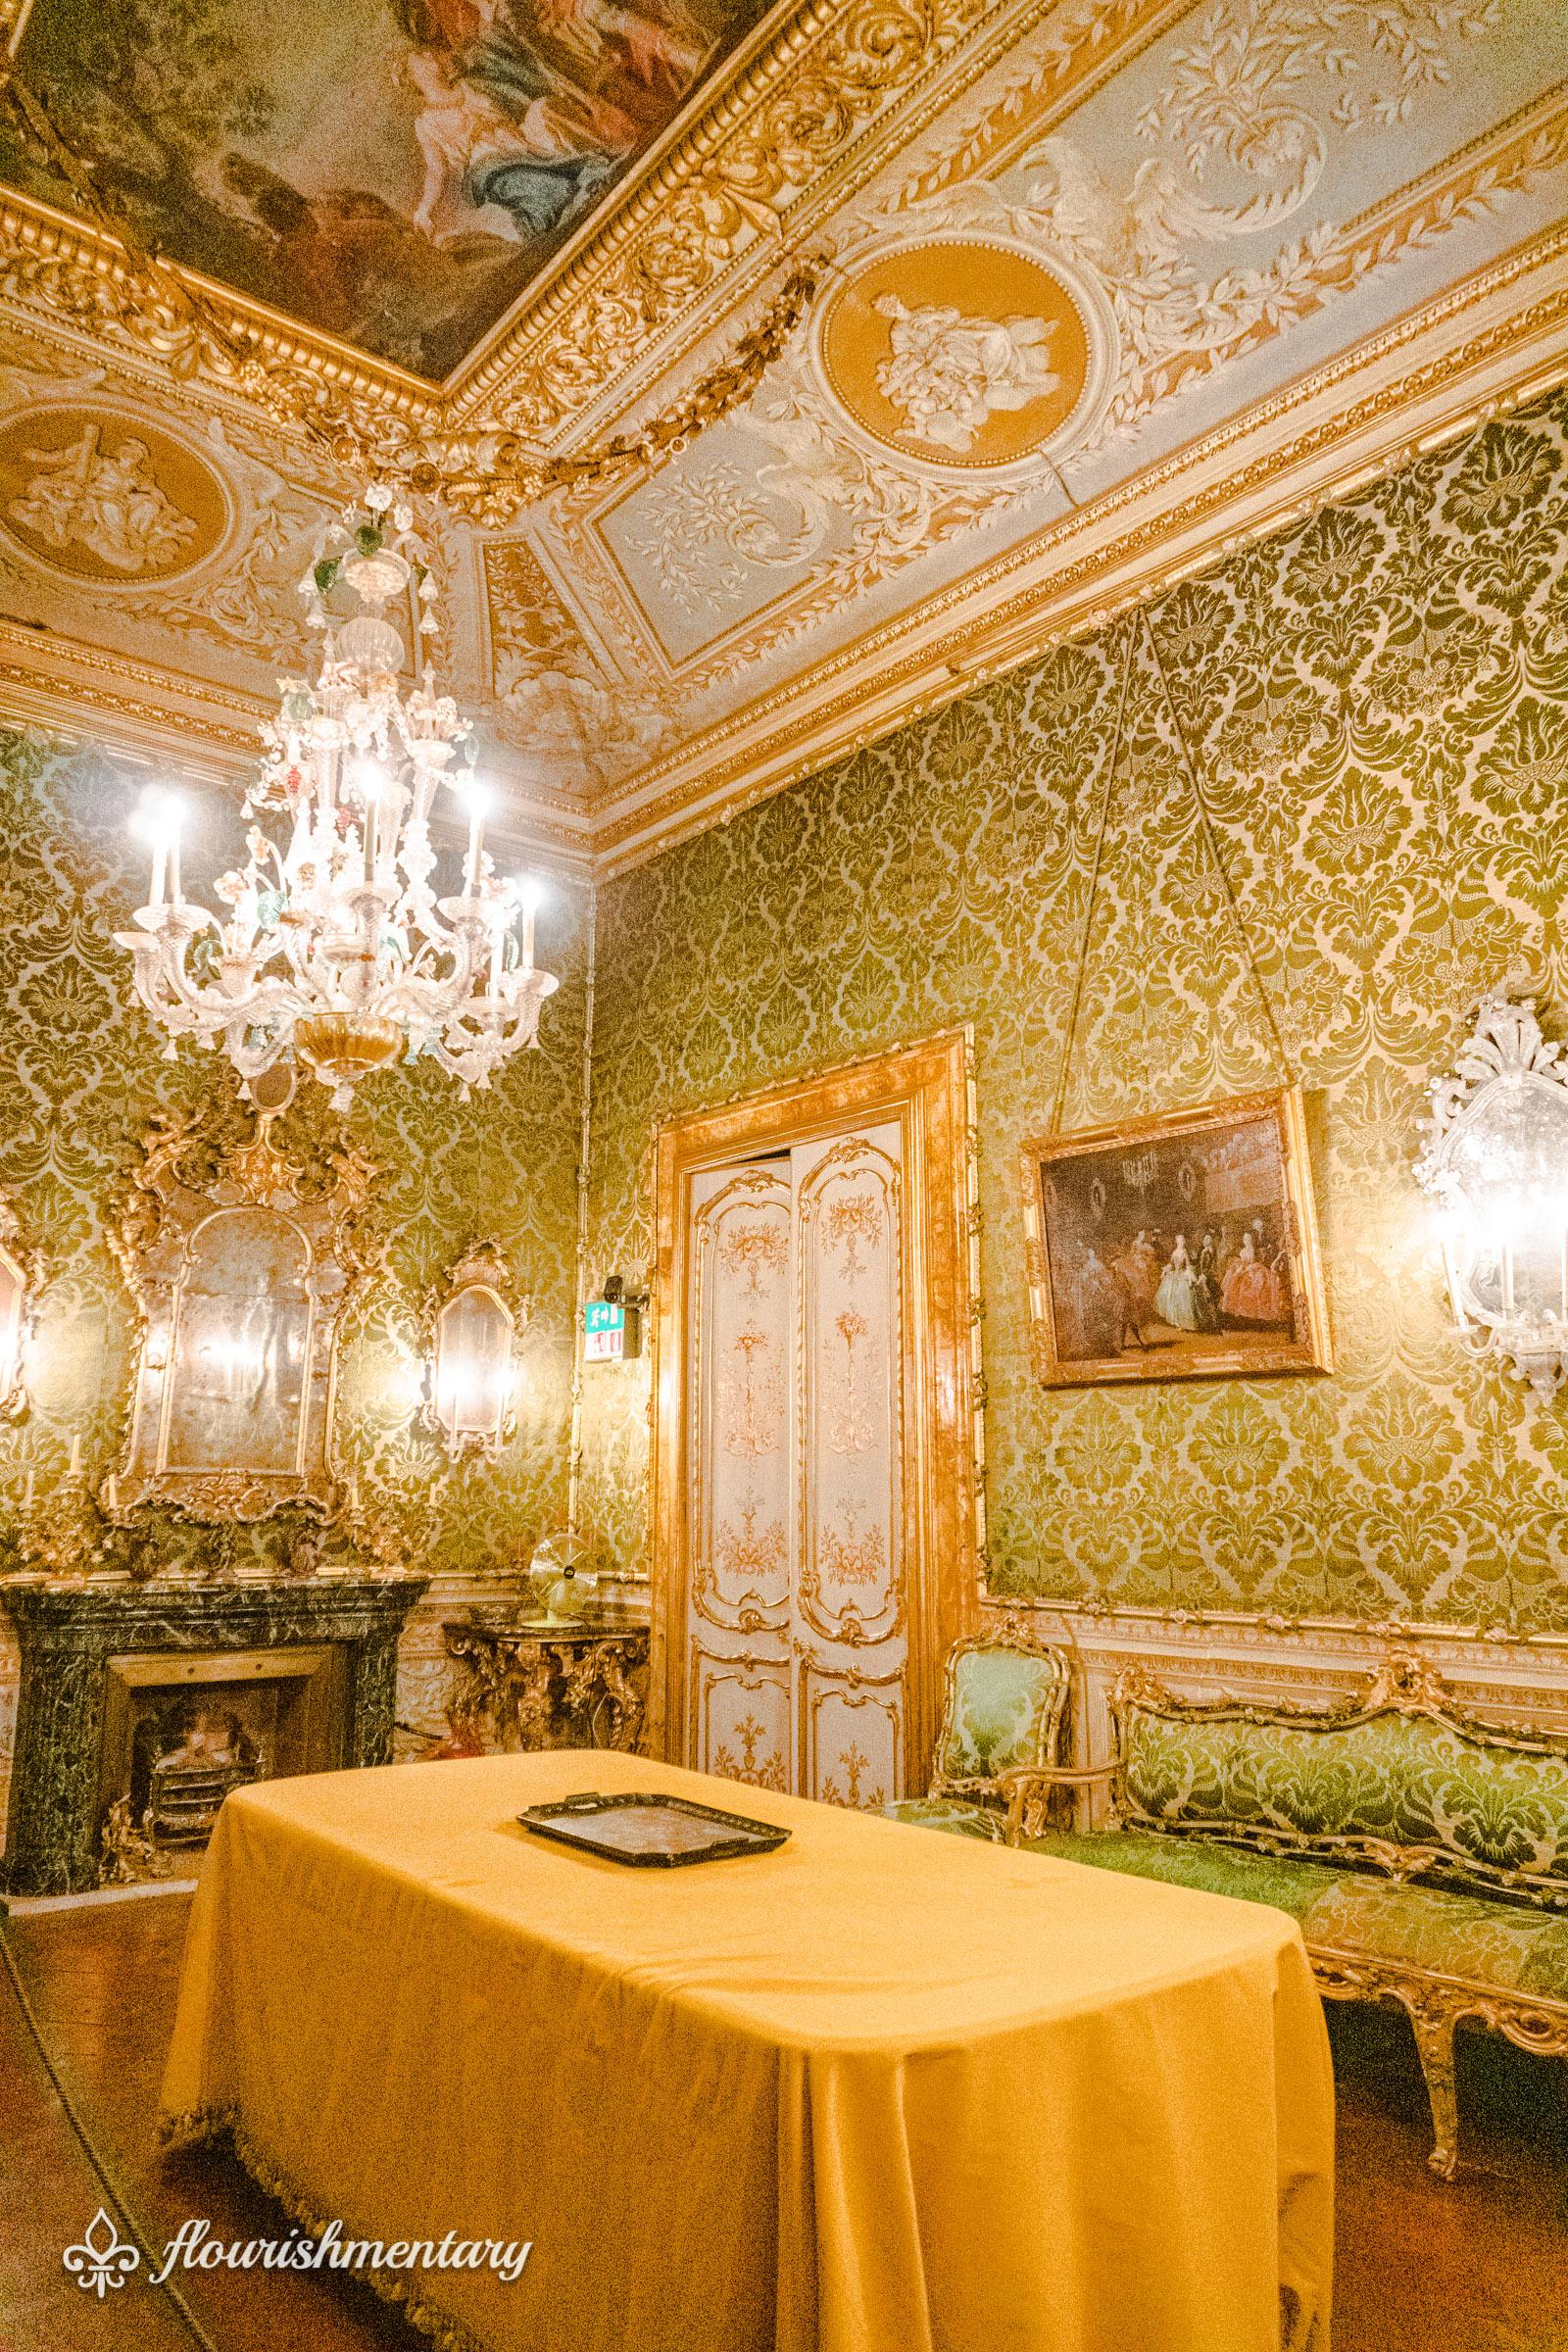 The Venetian Room galleria doria pamphilj